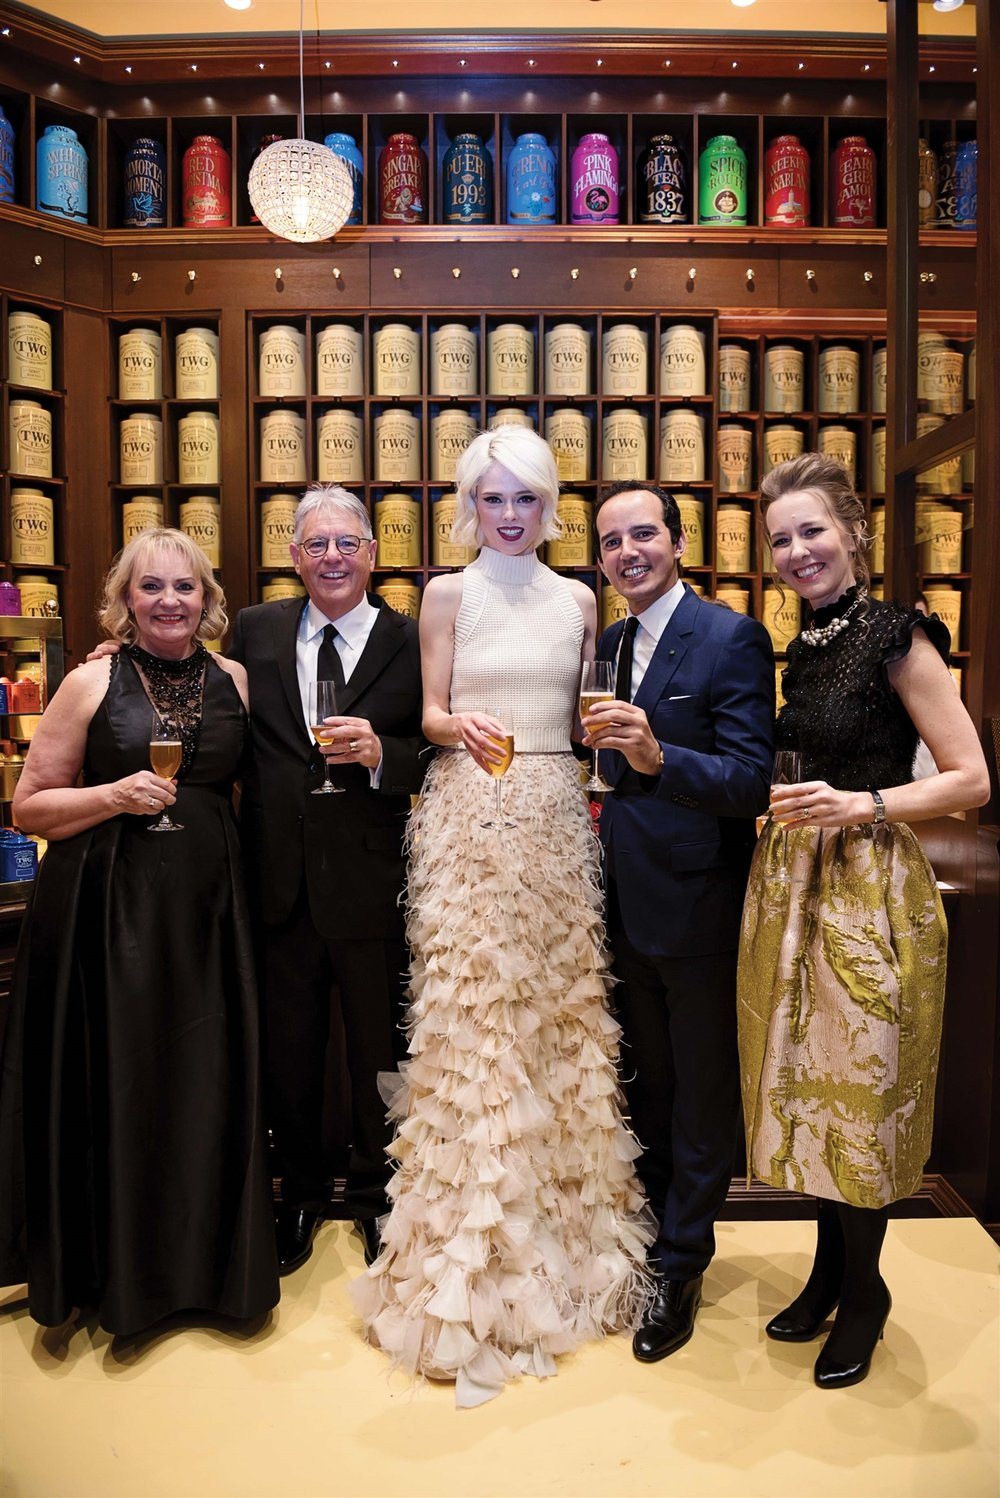 Karinna and Tom James, VanSing Distribution Group, supermodel Coco Rocha and TWG Tea cofounders Taha Bouqdib and Maranda Barnes.